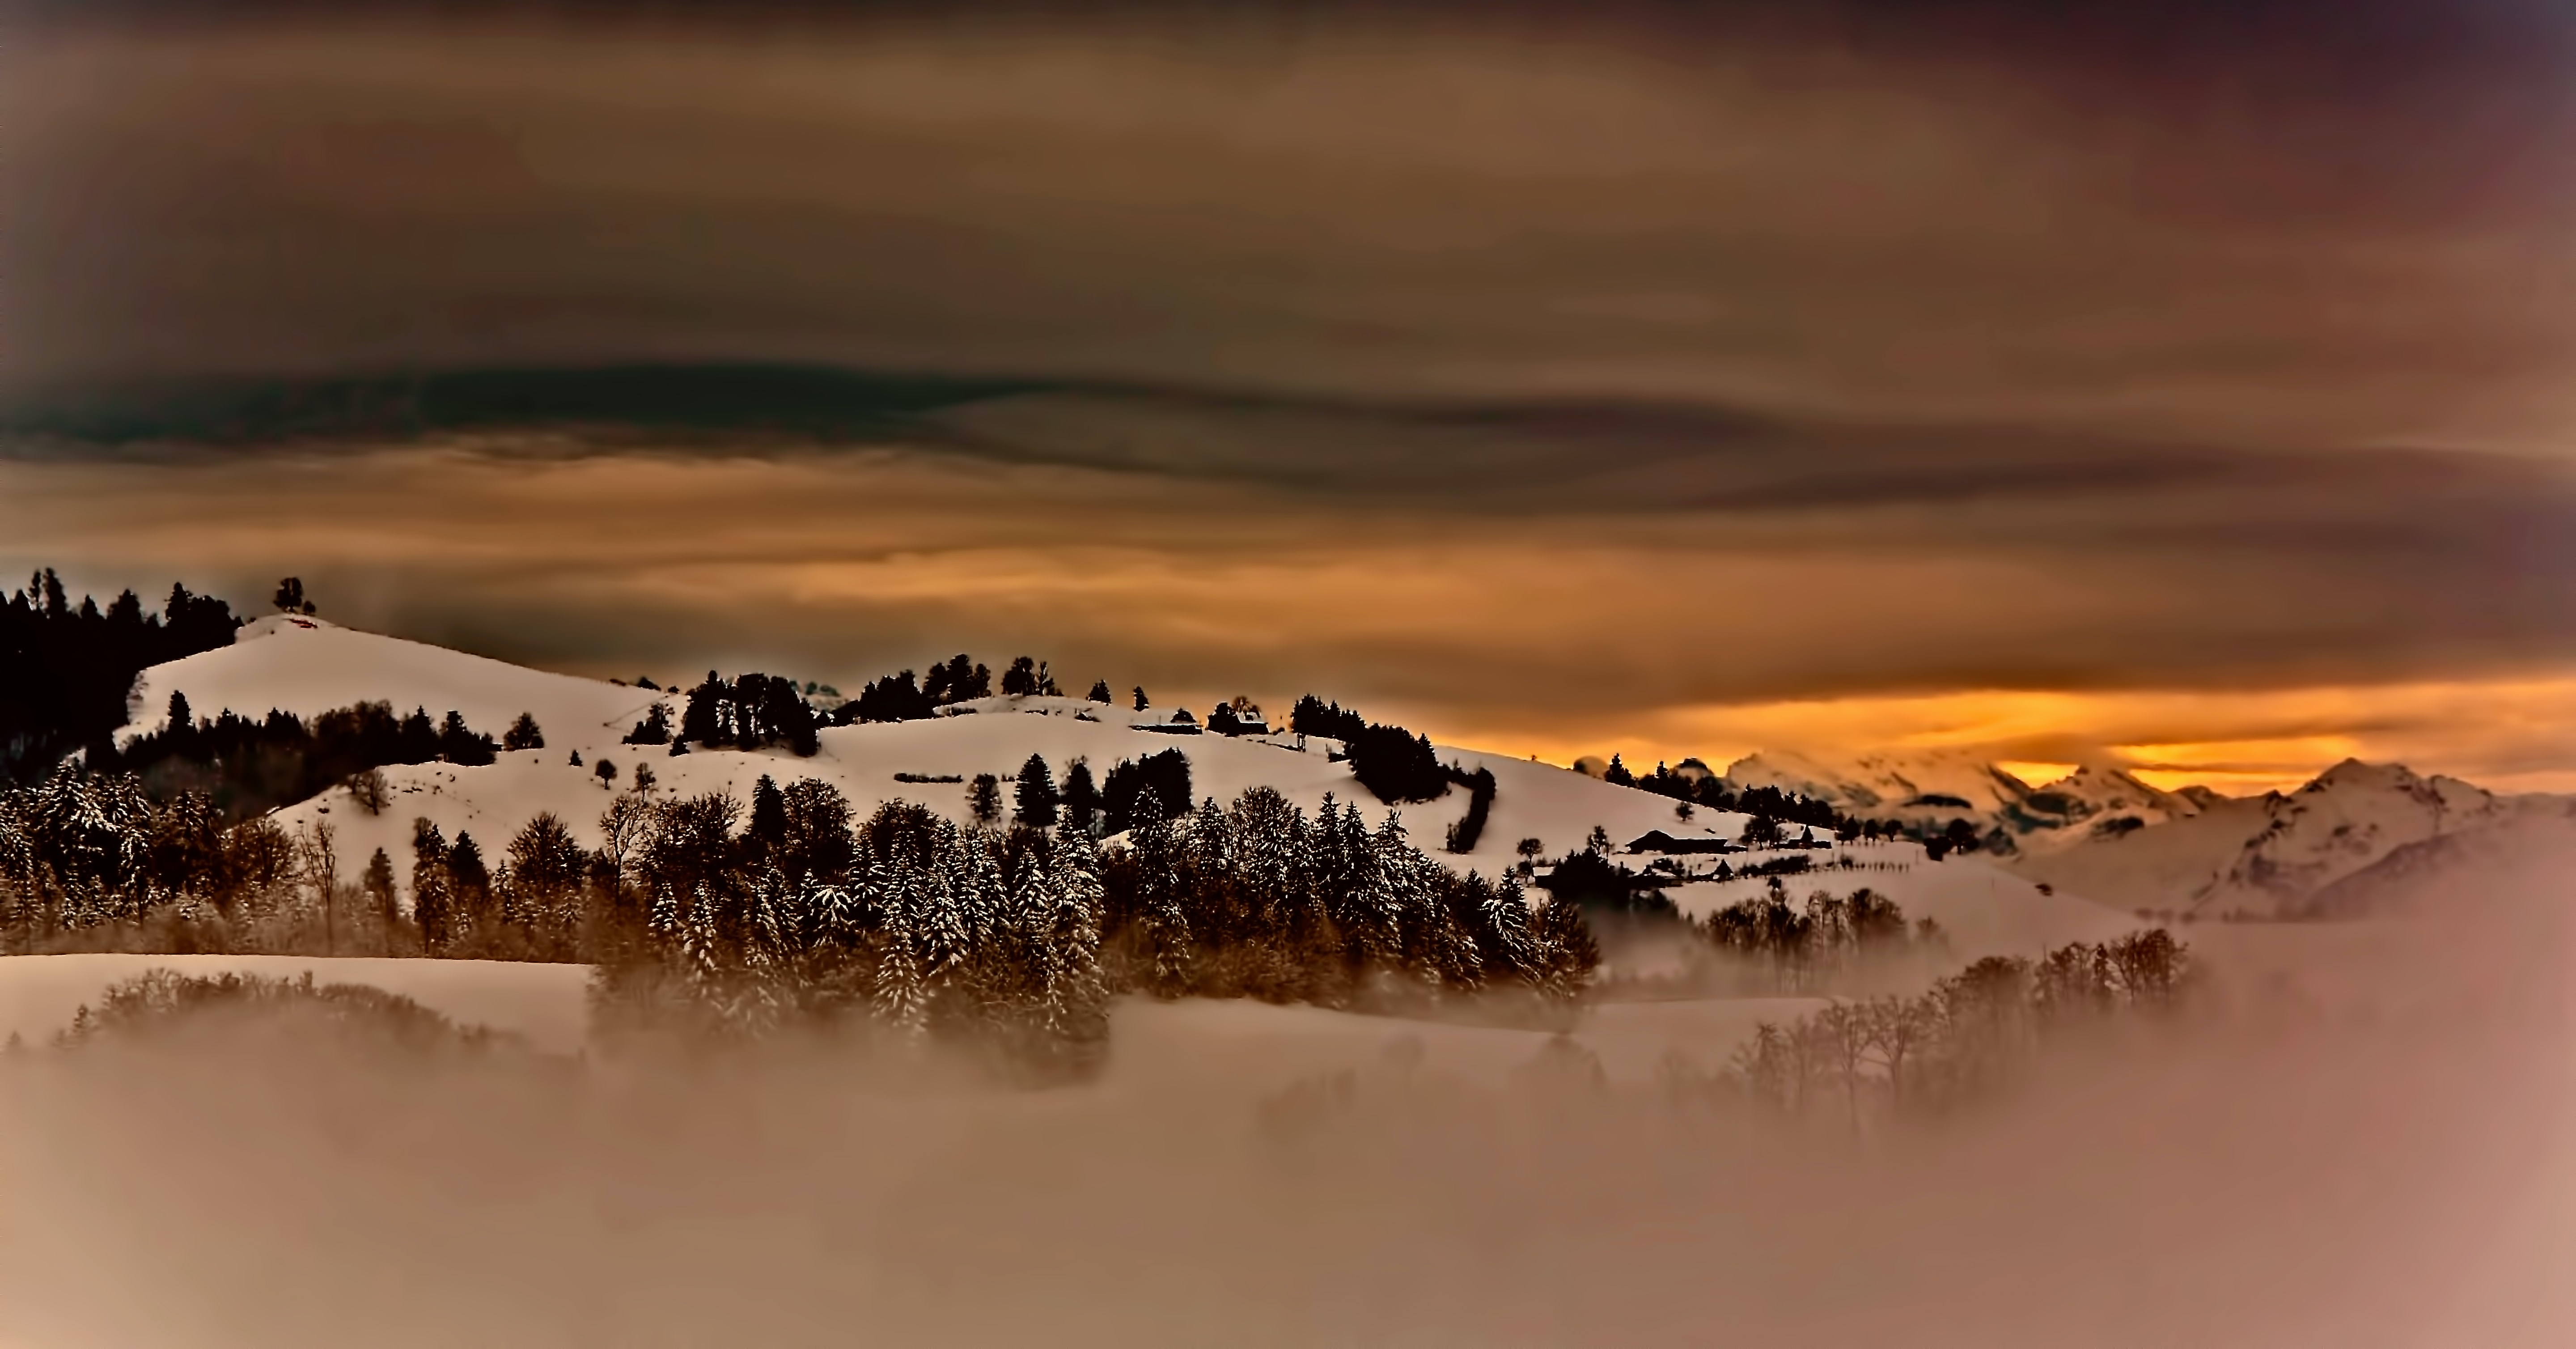 Orange sky shines over a snowy hillscape in Hirzel